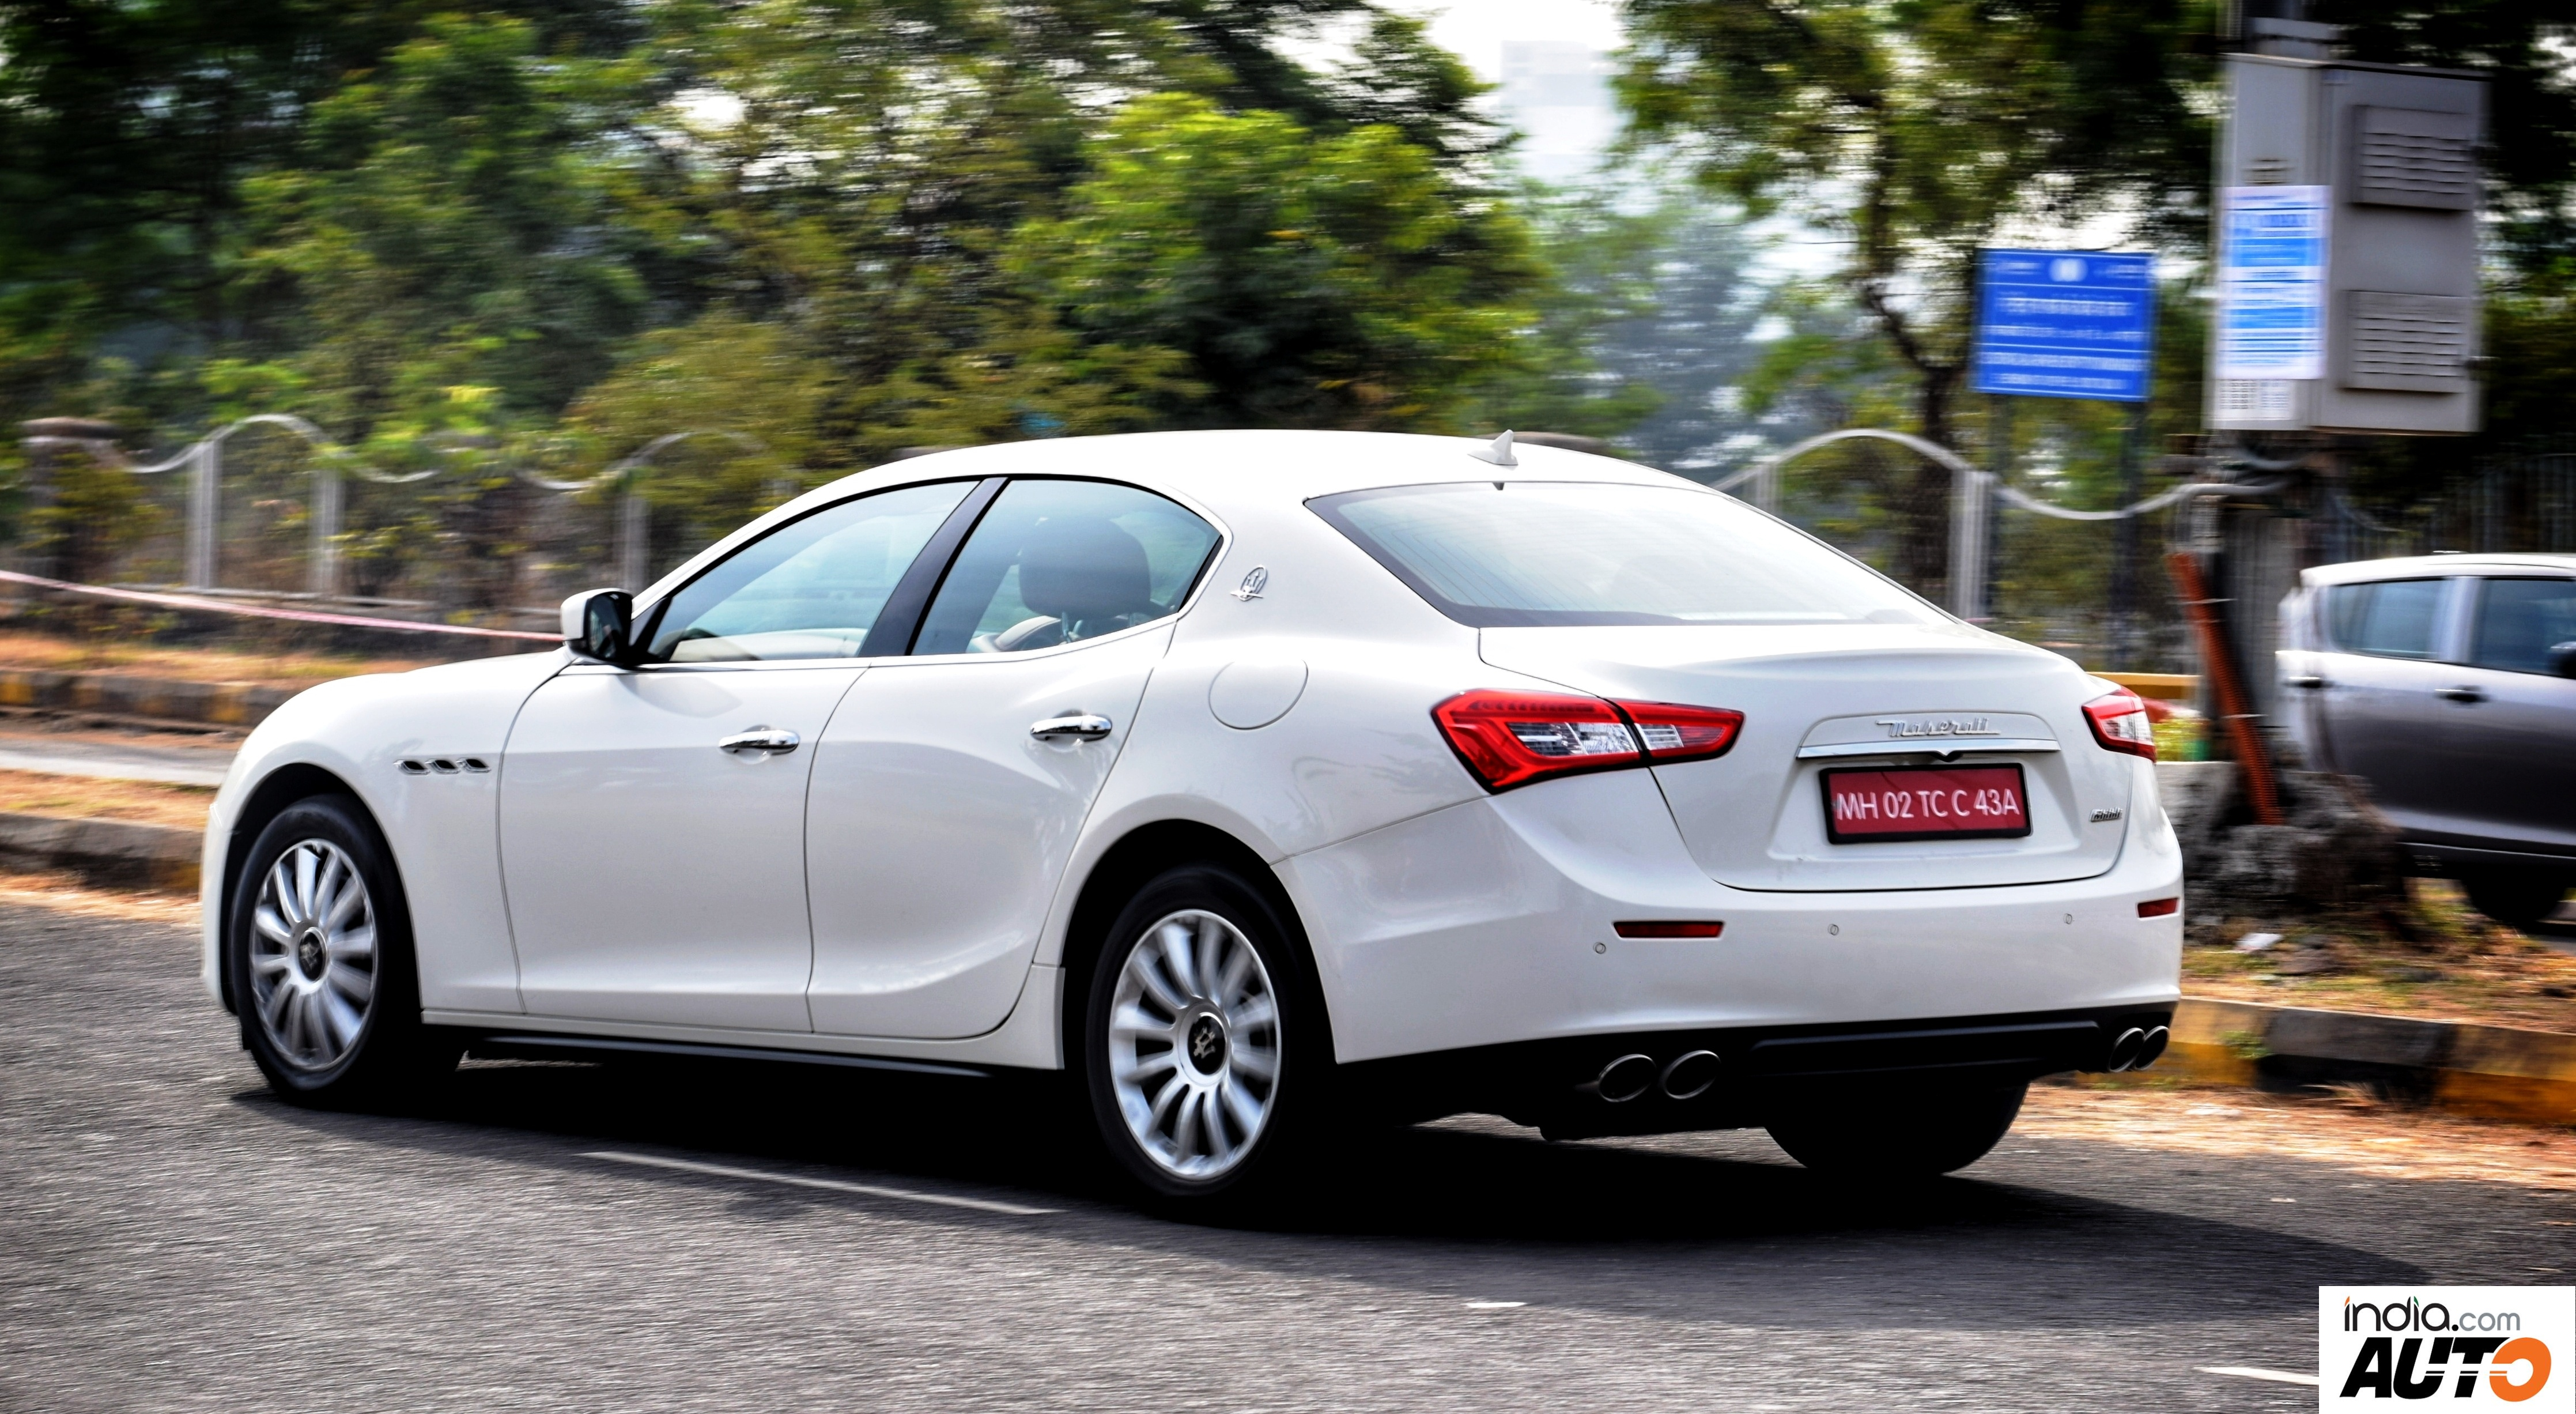 Maserati Ghibli in Action - Rear Quarter